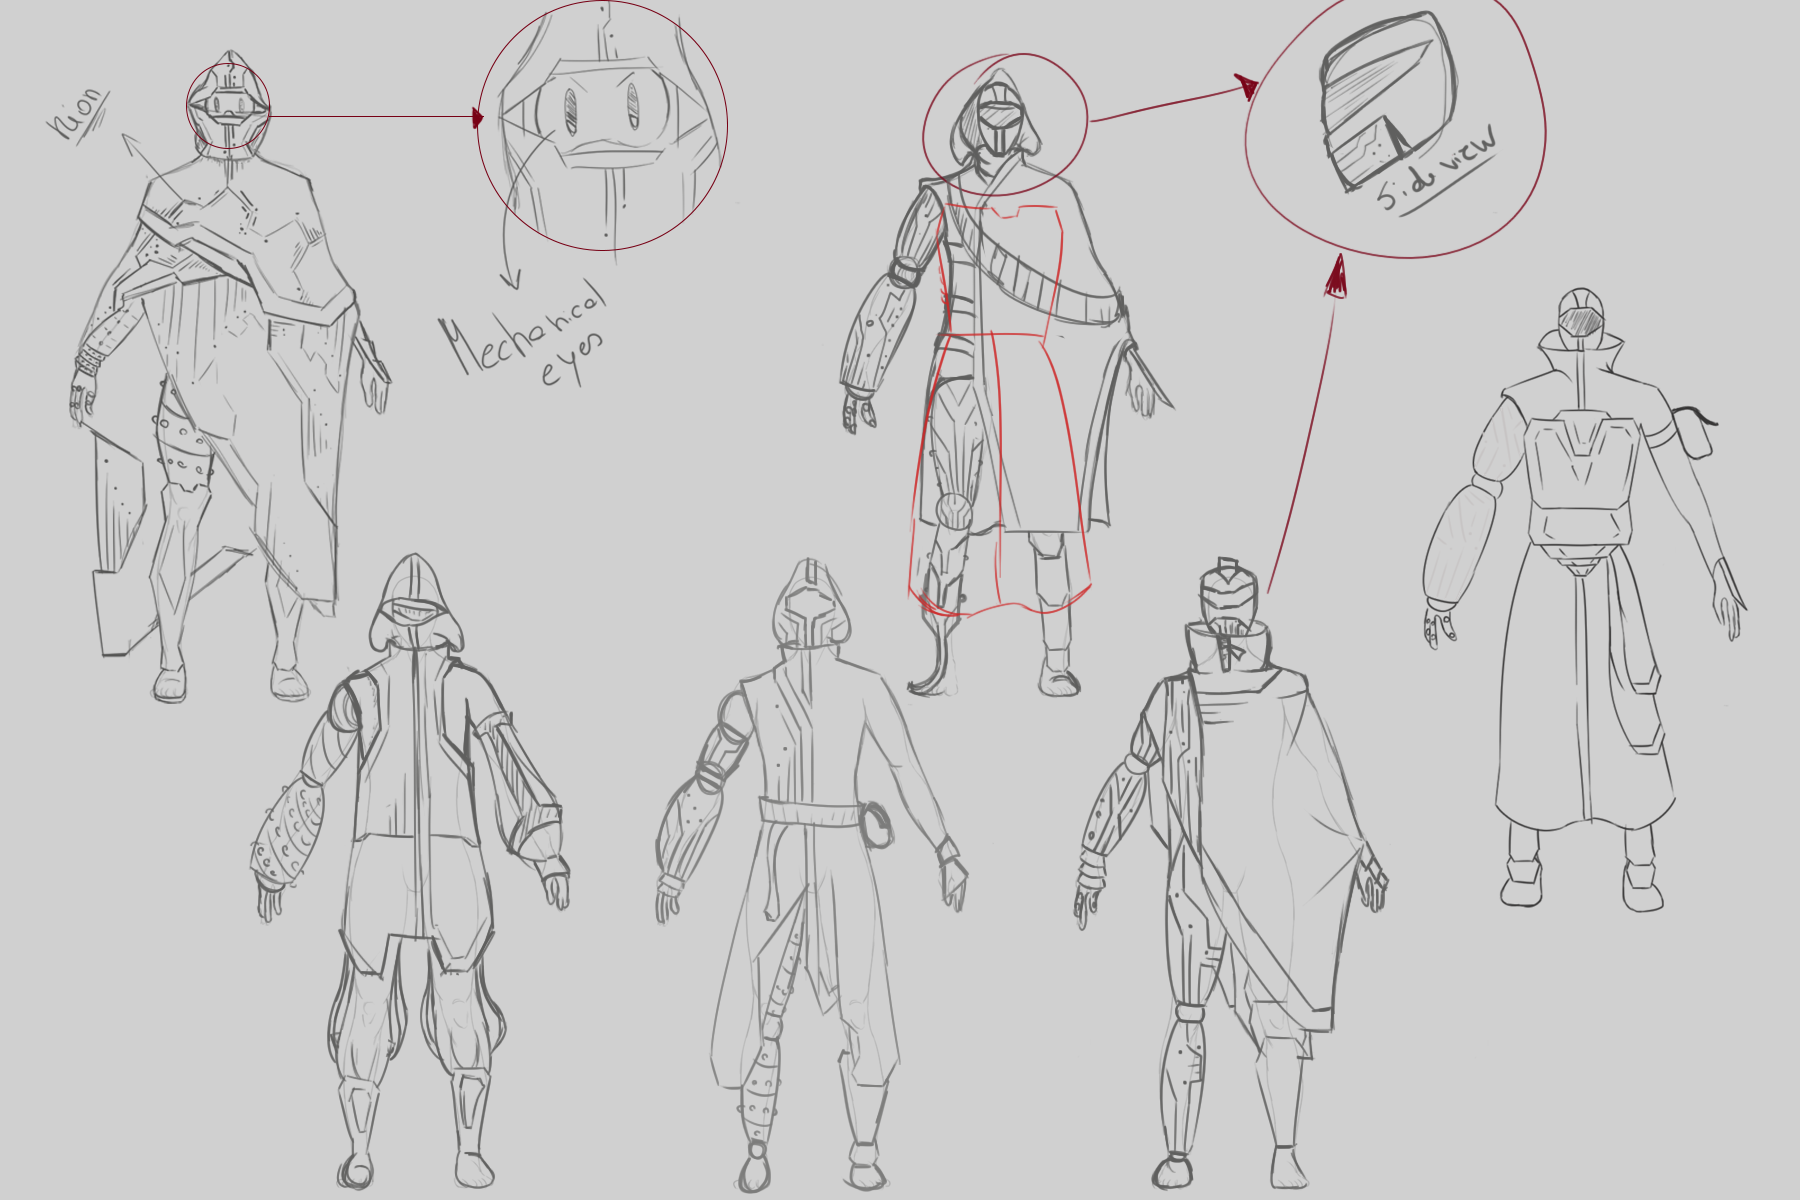 Character Design Rough Sketch 1